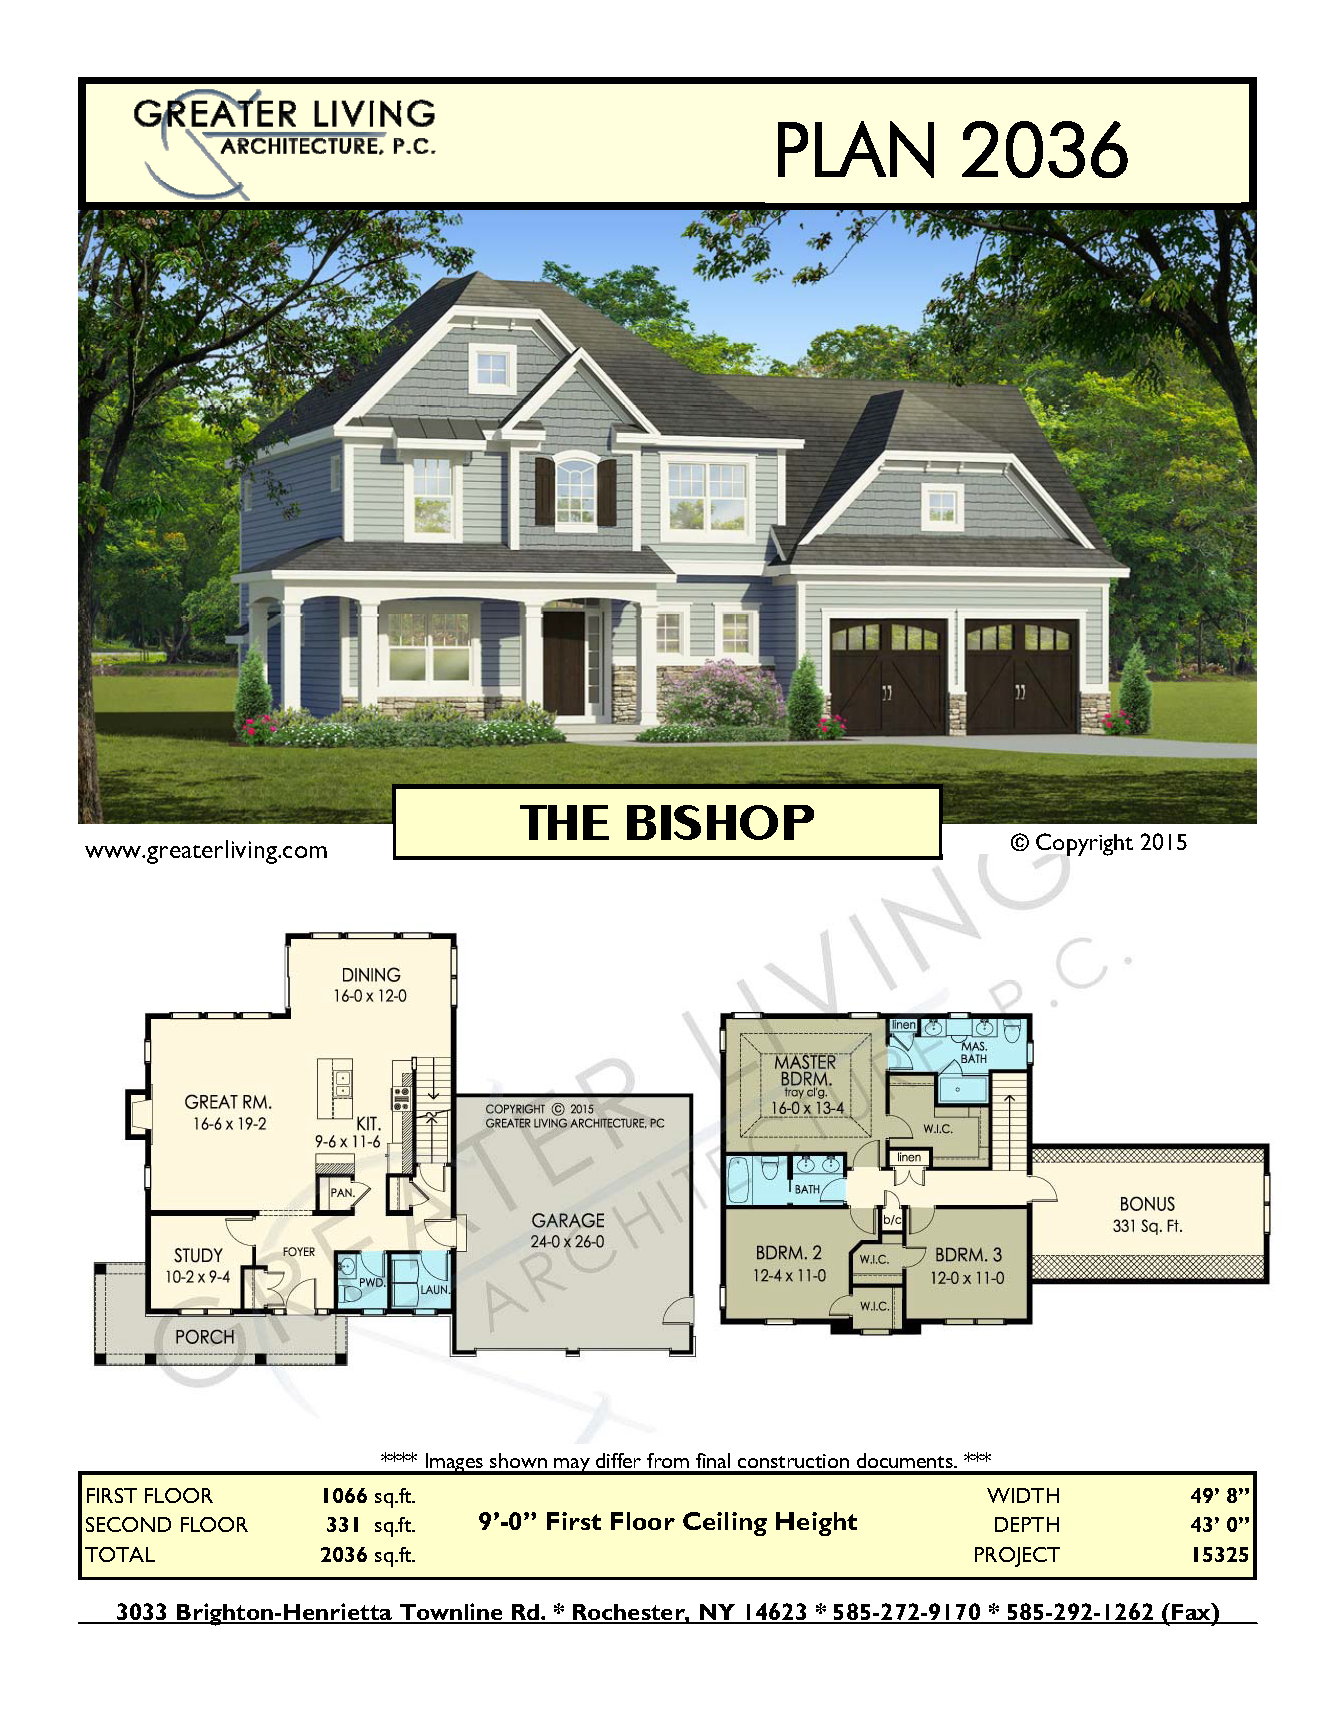 Plan 2036 THE BISHOP House Plans 2 Story House Plan Greater